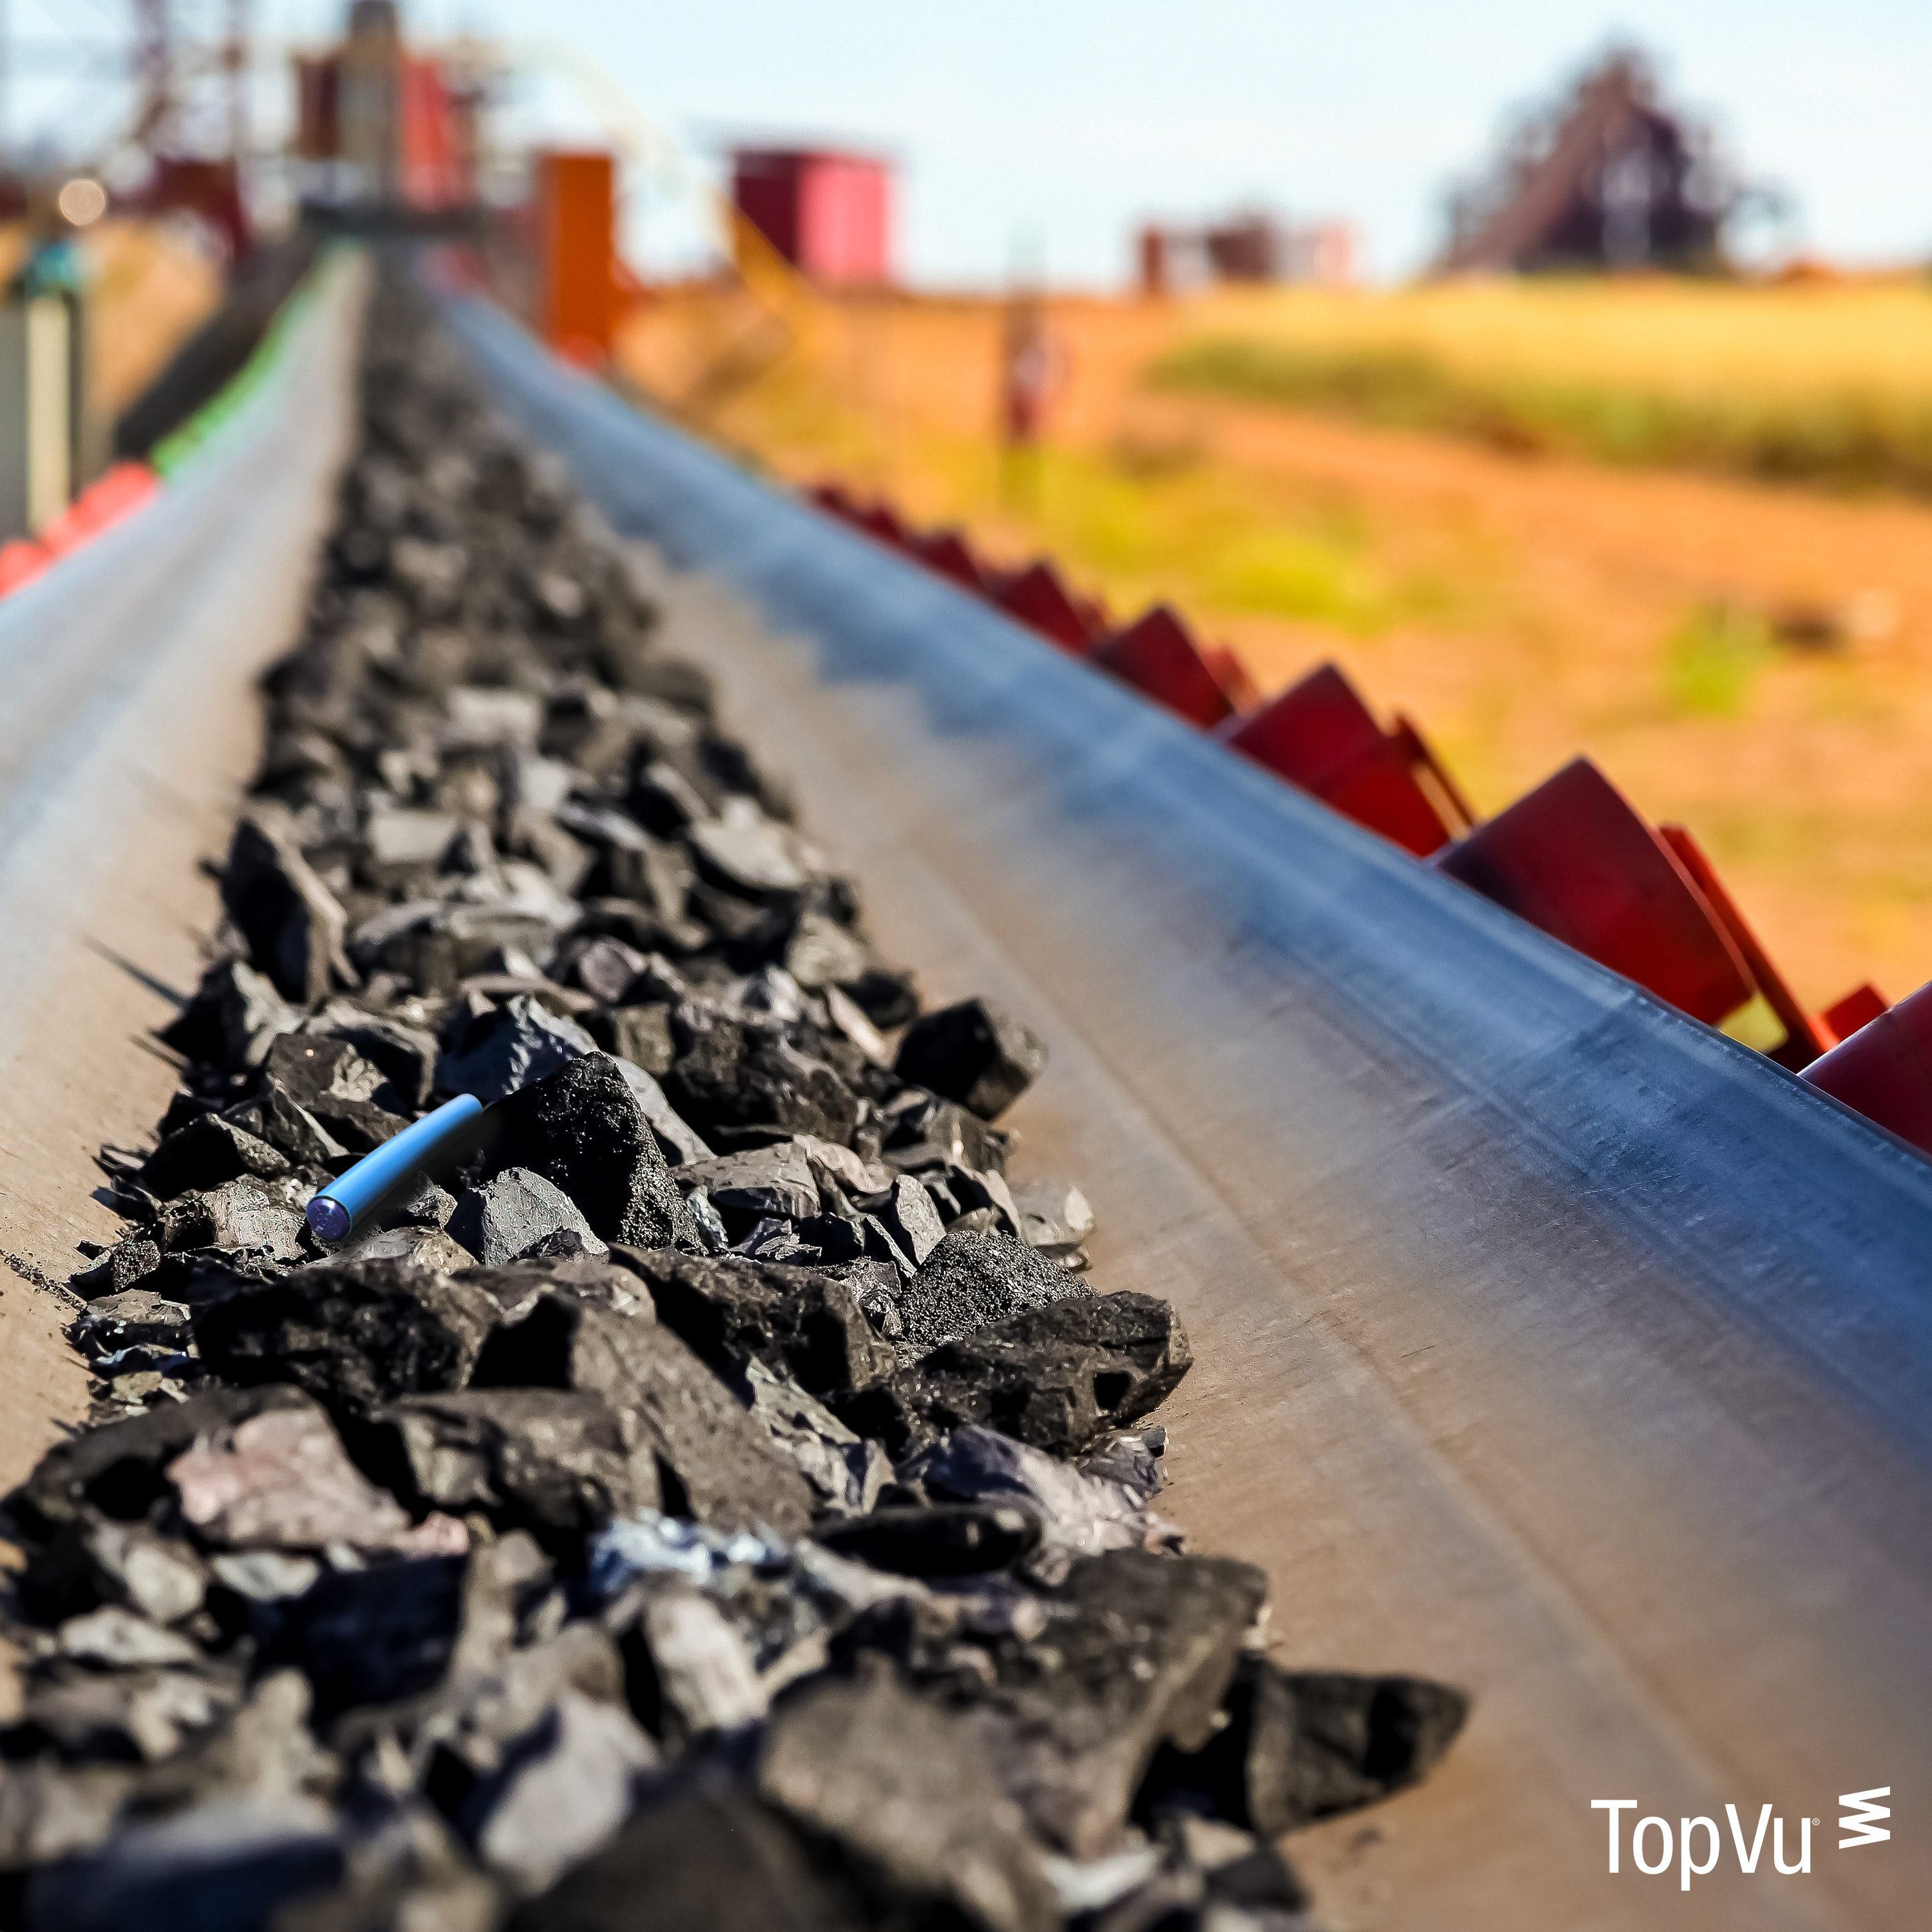 Manganese Mining And Processing In South Africa 2